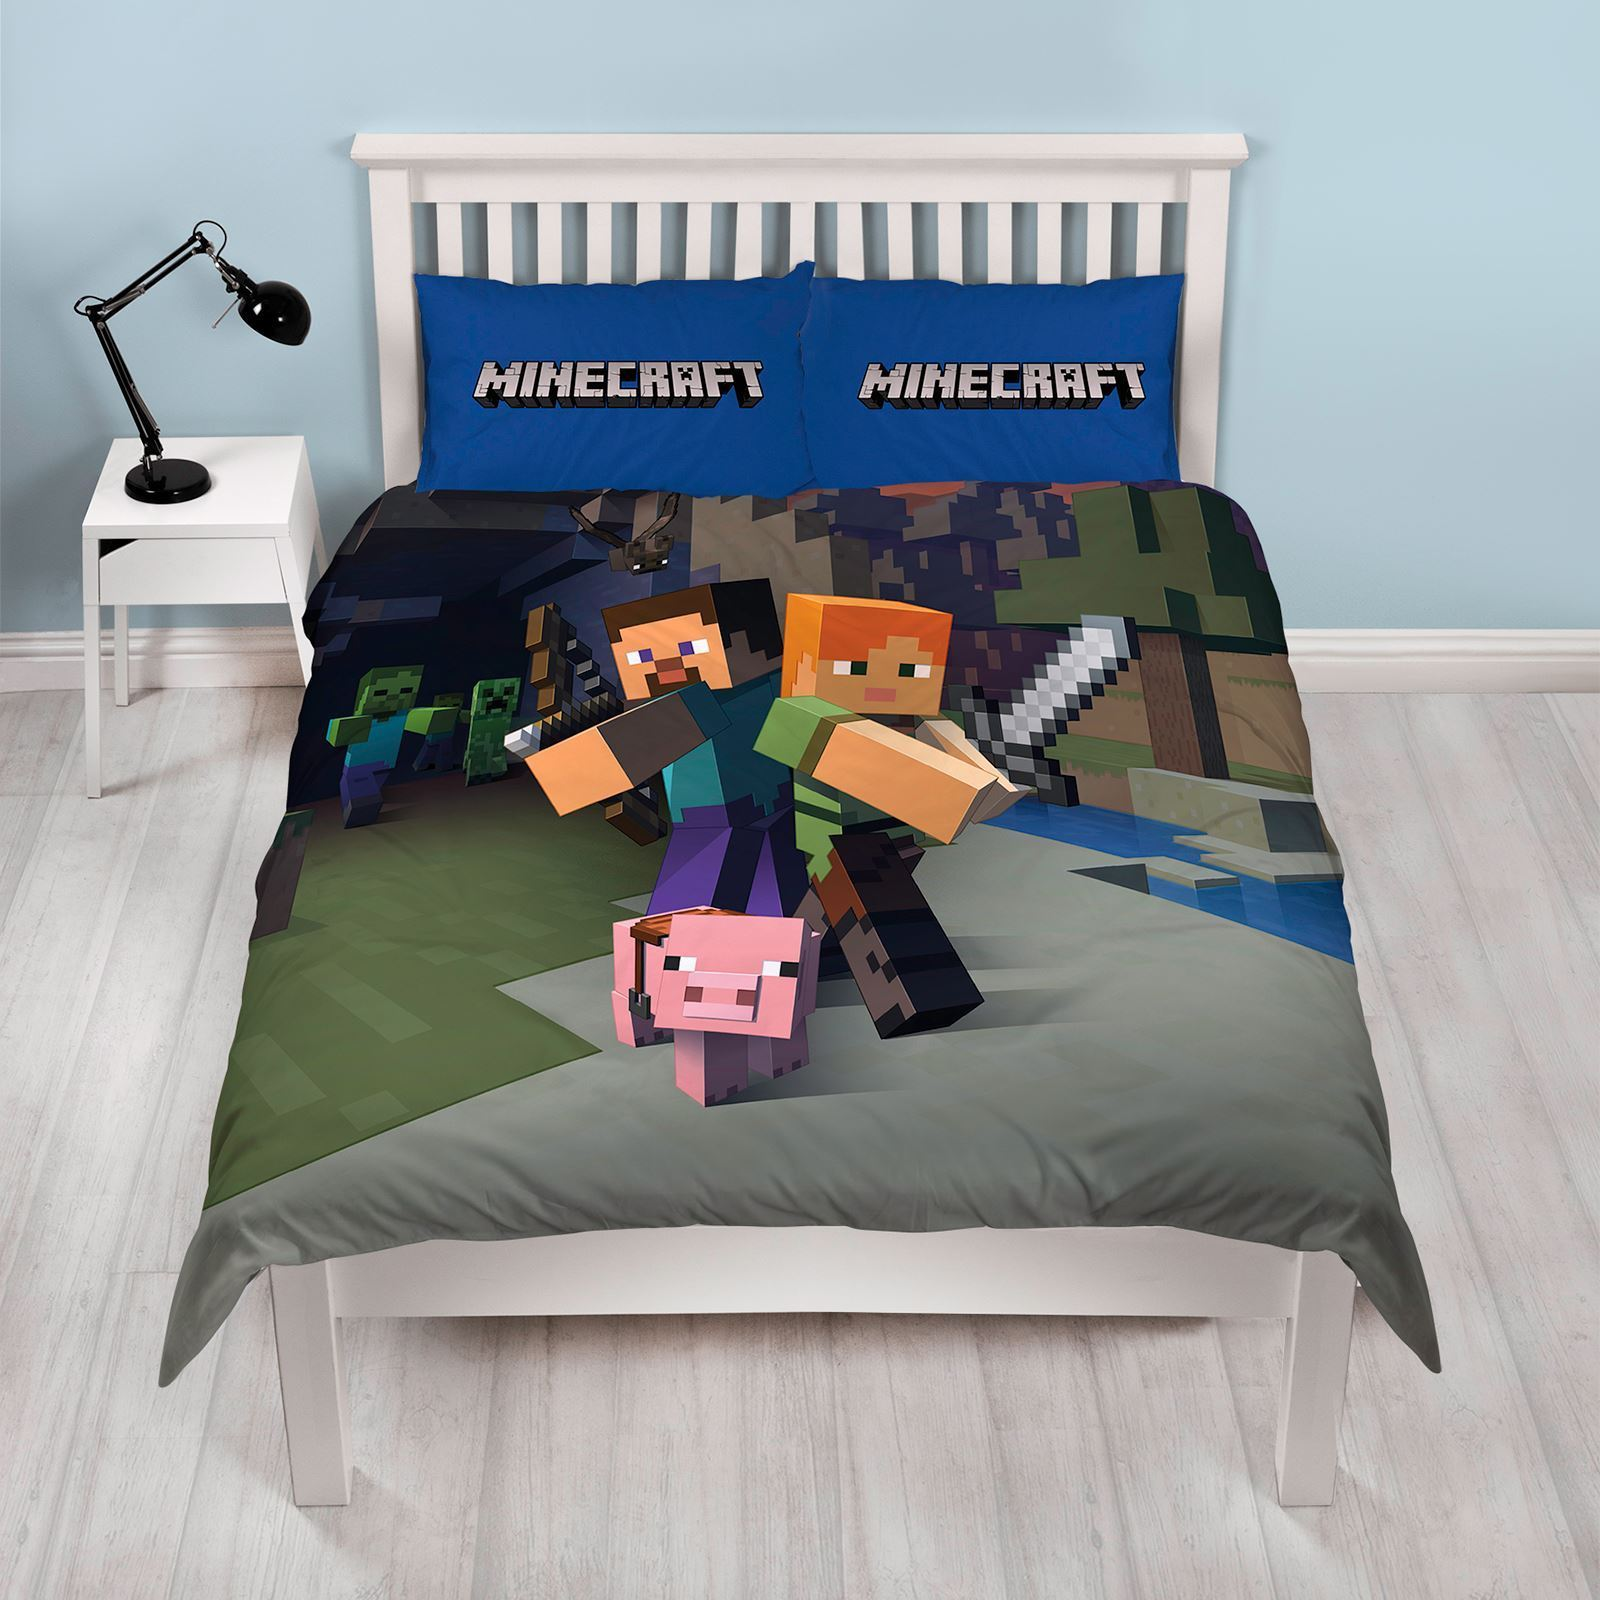 MINECRAFT ~ 'Goodguys' Double/Queen Bed Quilt Cover Set